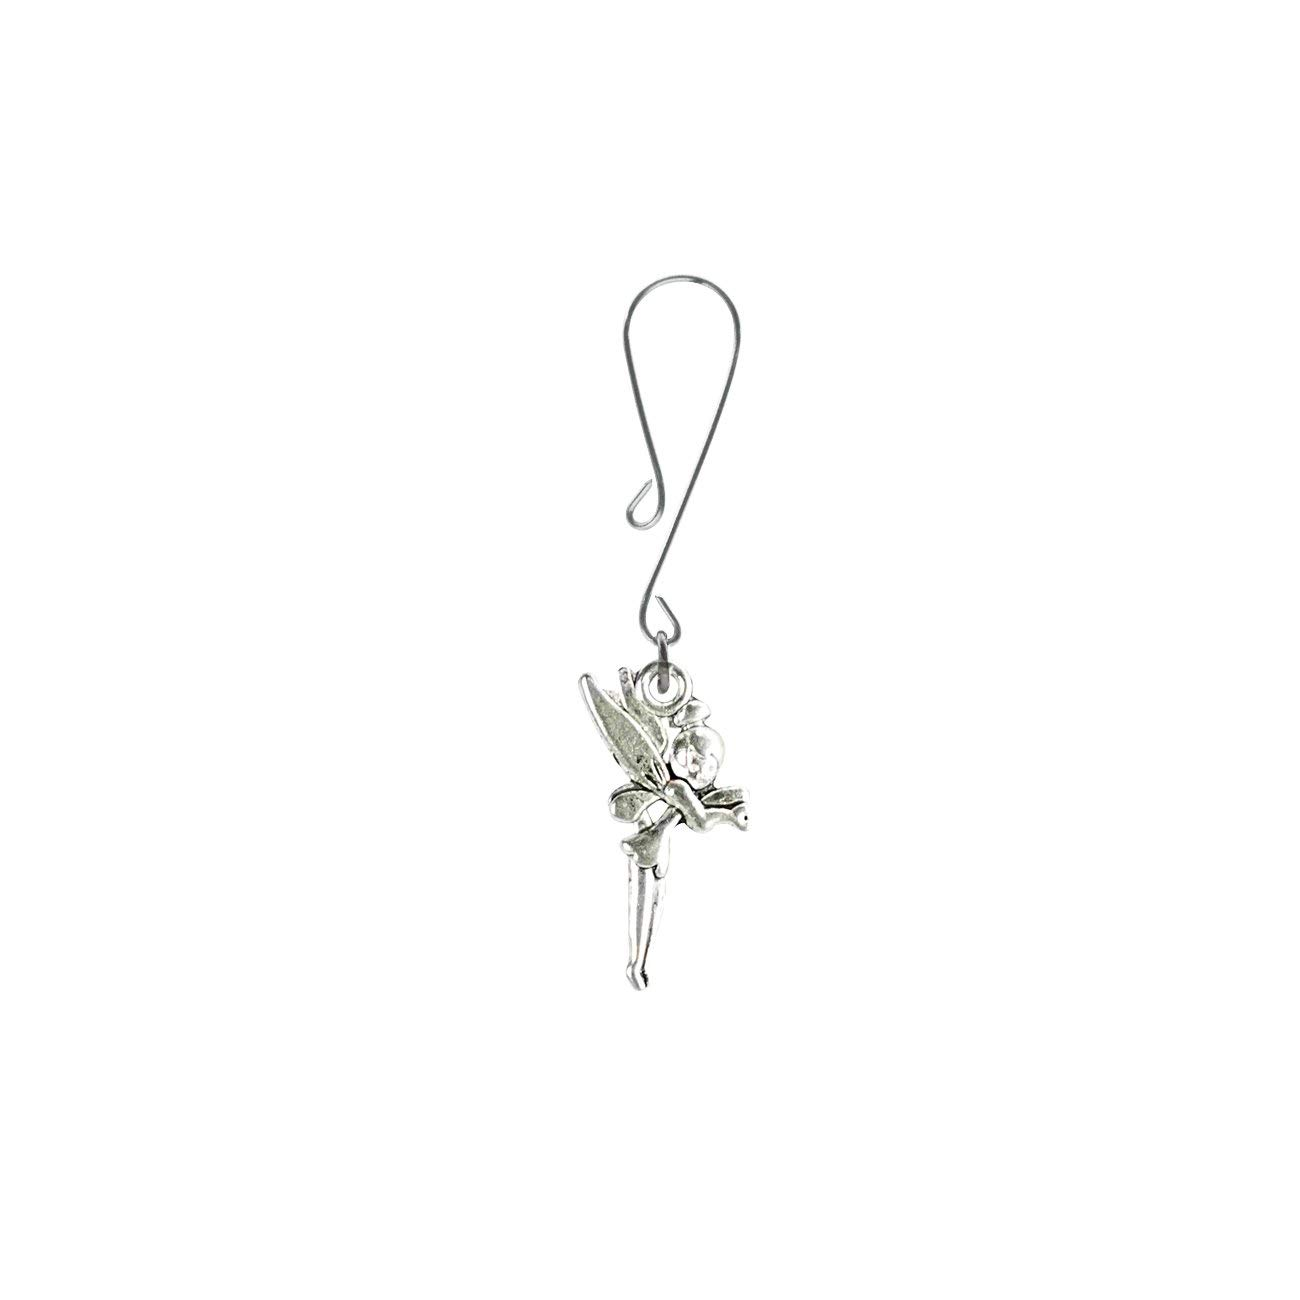 678357fcc Get Quotations · Party Silver Tinkerbell Fairy Charm on Curl Loop Clit  Clamp includes organza gift storage bag